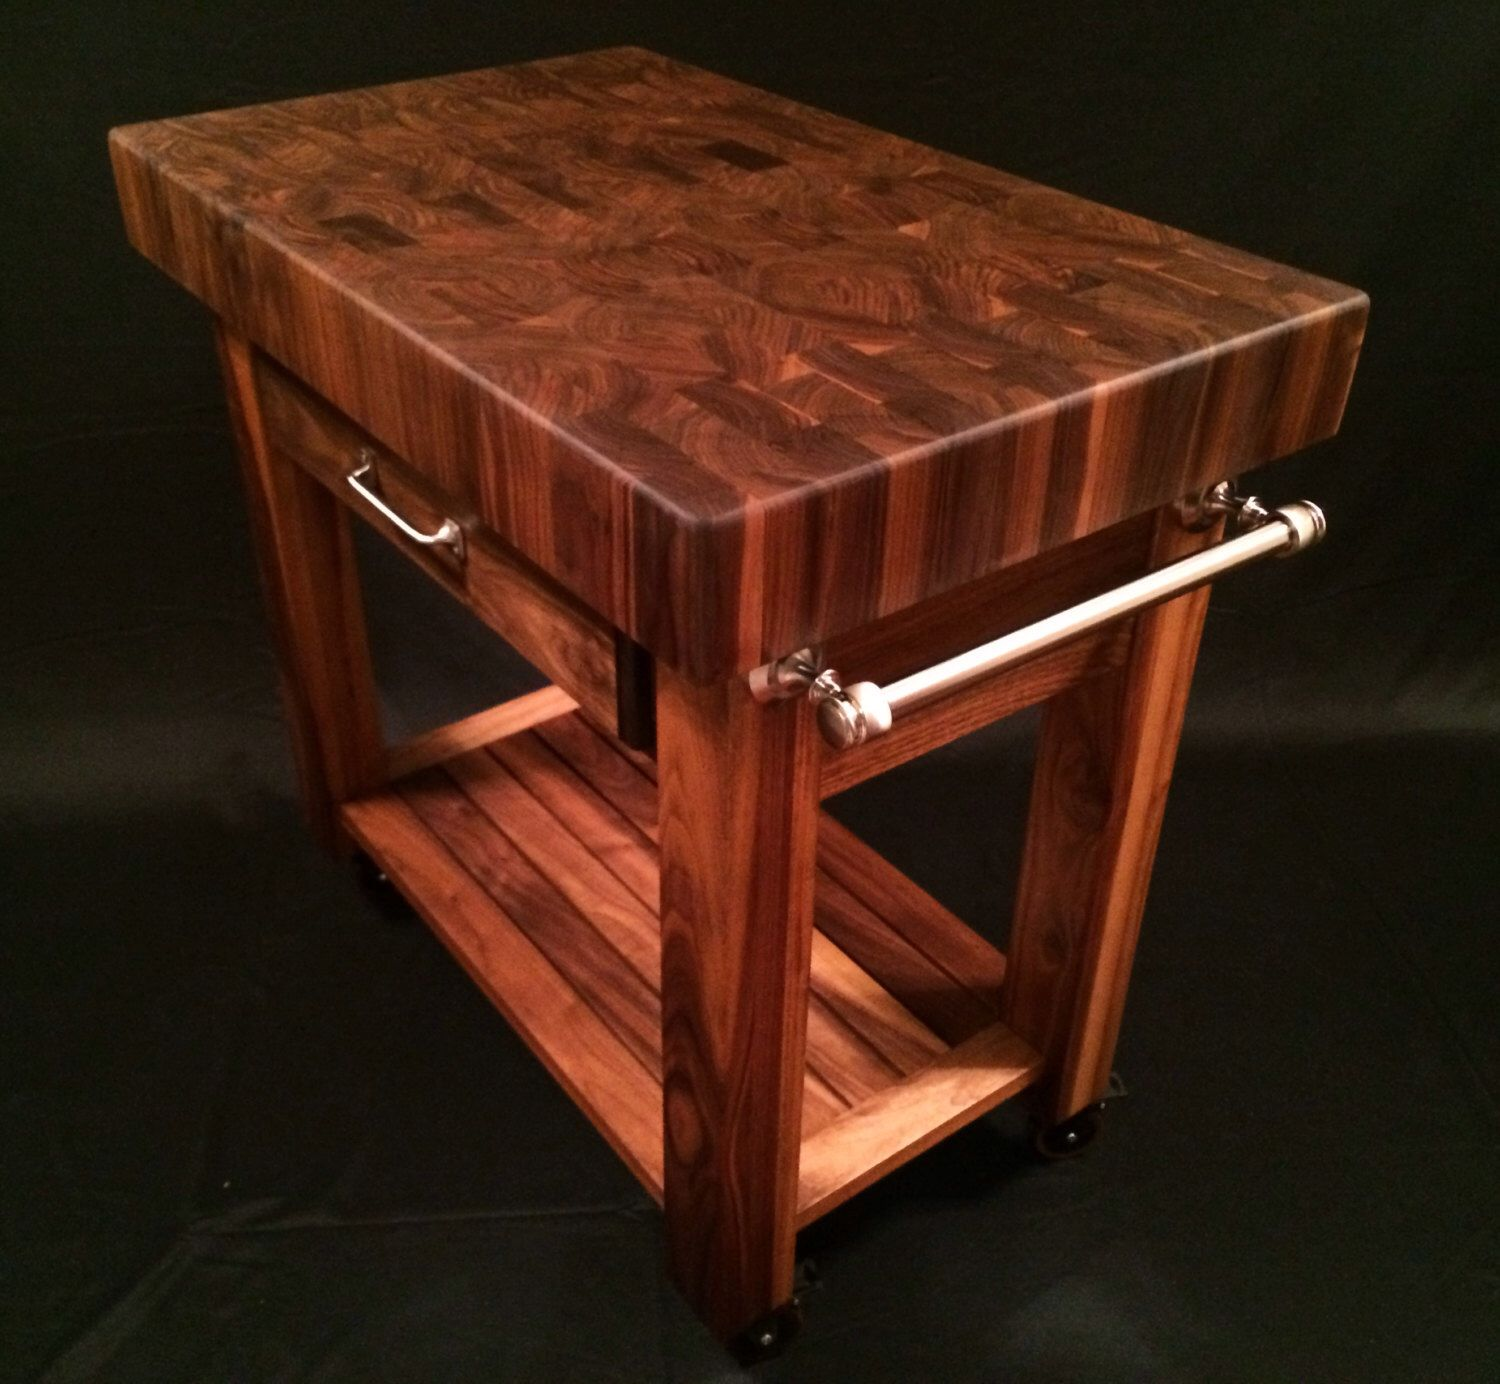 Beautiful Black Walnut End Grain Butcher Block Kitchen Cart By Magnoliawoodworks On Etsy Https